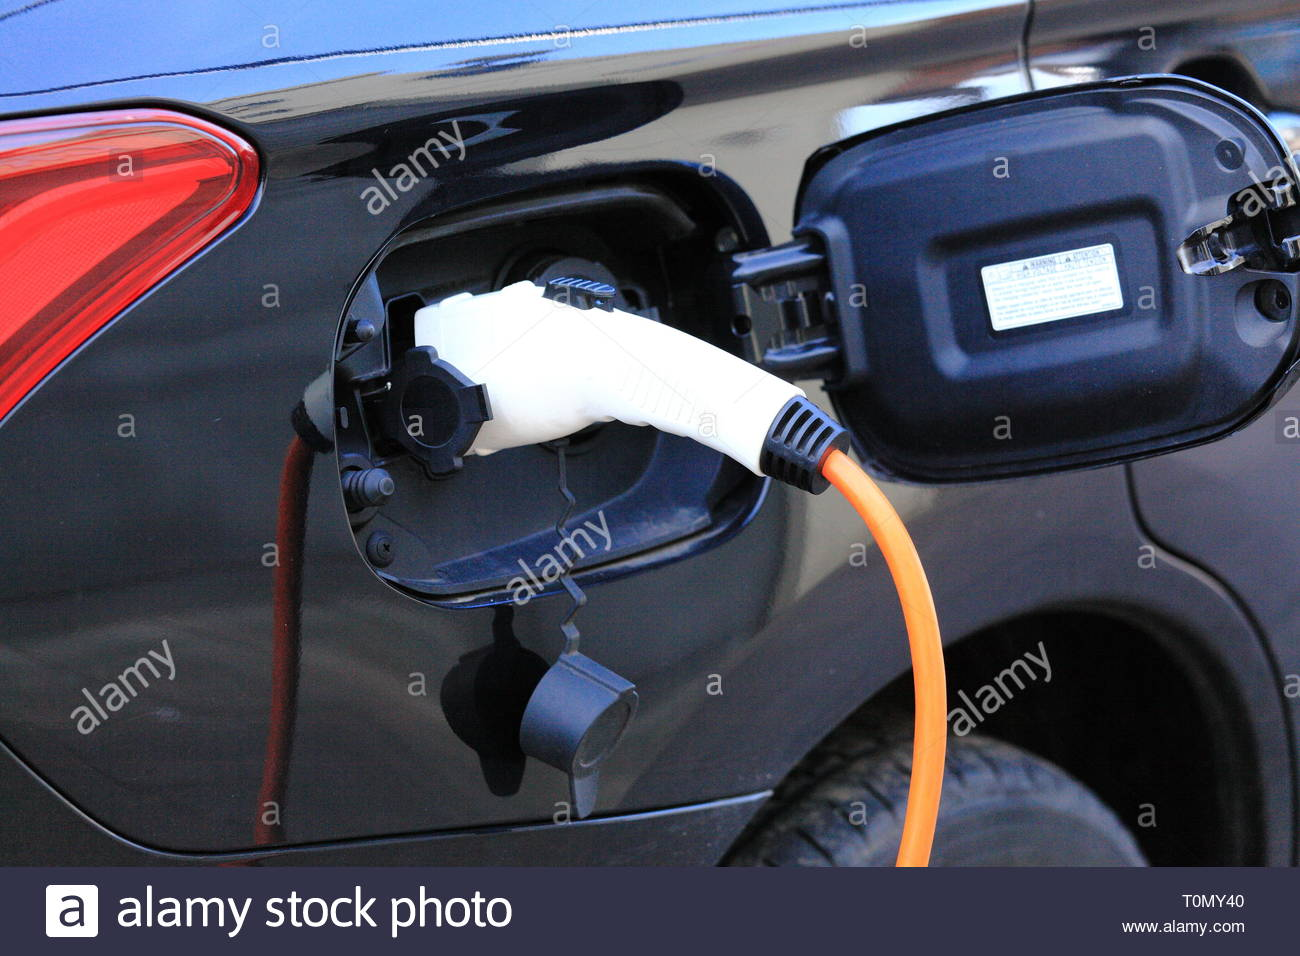 A car charging at an electric charting meter point at Stockport UK - Stock Image